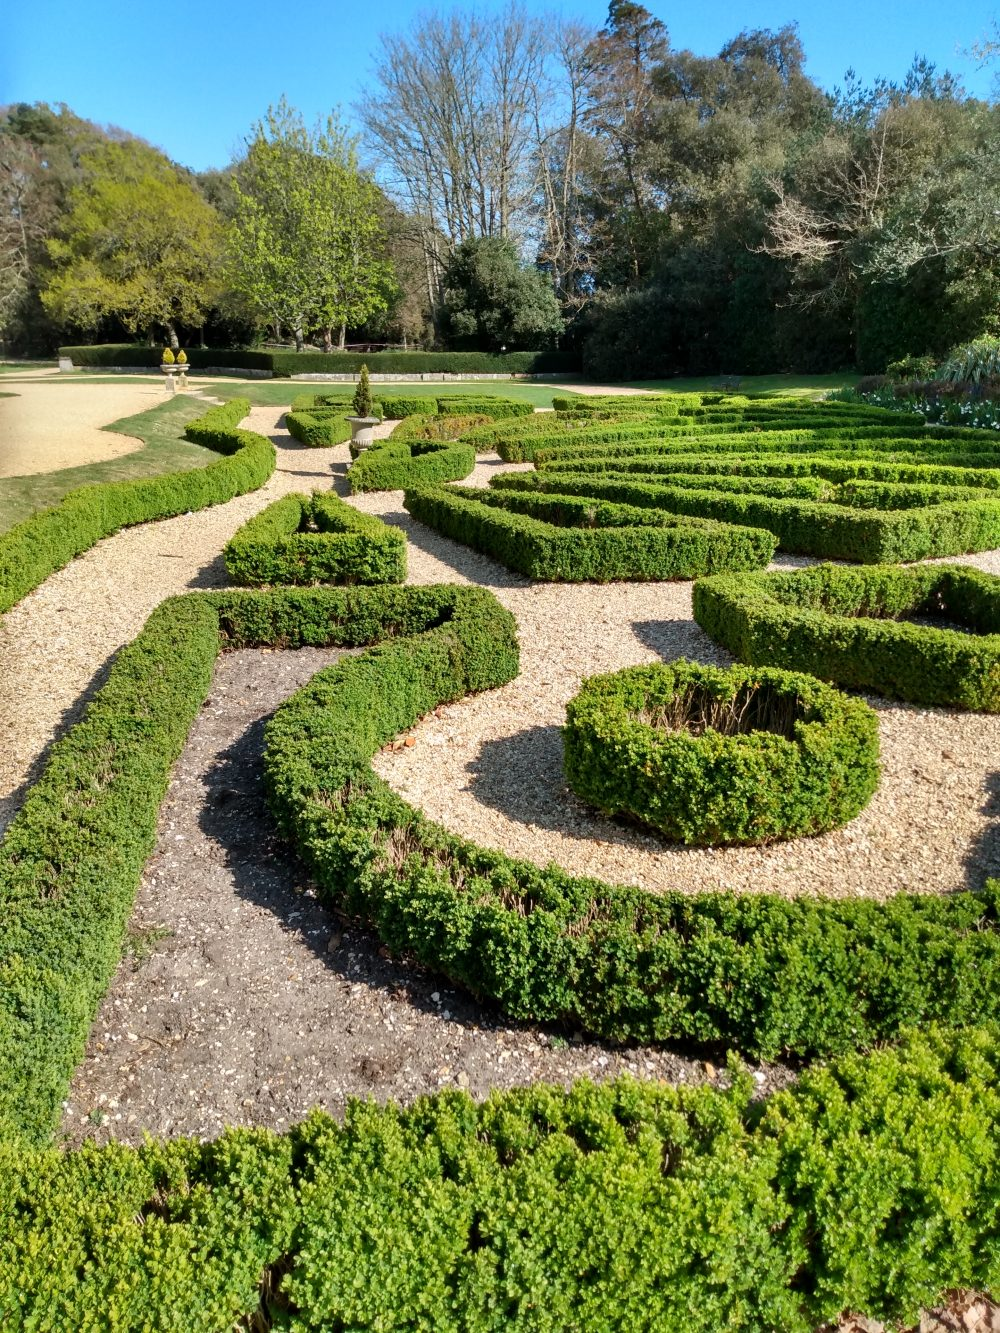 The Parterre with neat box shrub patterns and gravel in between